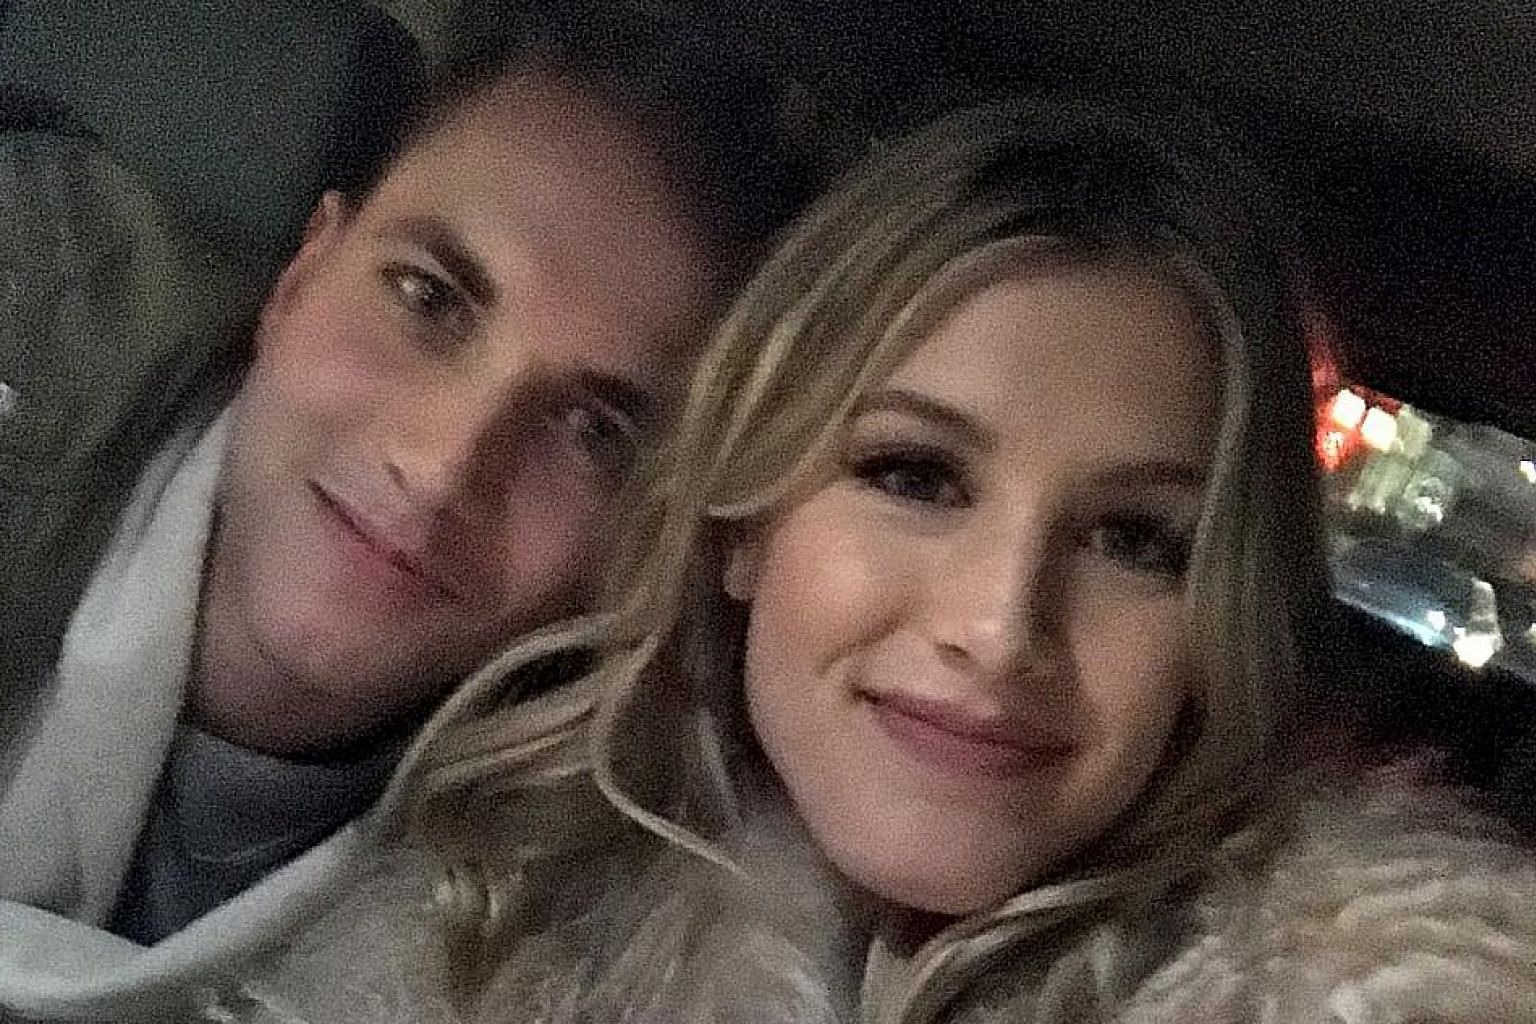 """World No. 44 tennis player Eugenie Bouchard taking a selfie with her blind date John Goehrke. She posted this picture in a tweet with a message that read: """"Just met my 'Super Bowl Twitter Date' John. On our way to the @BrooklynNets game! @punslayintw"""